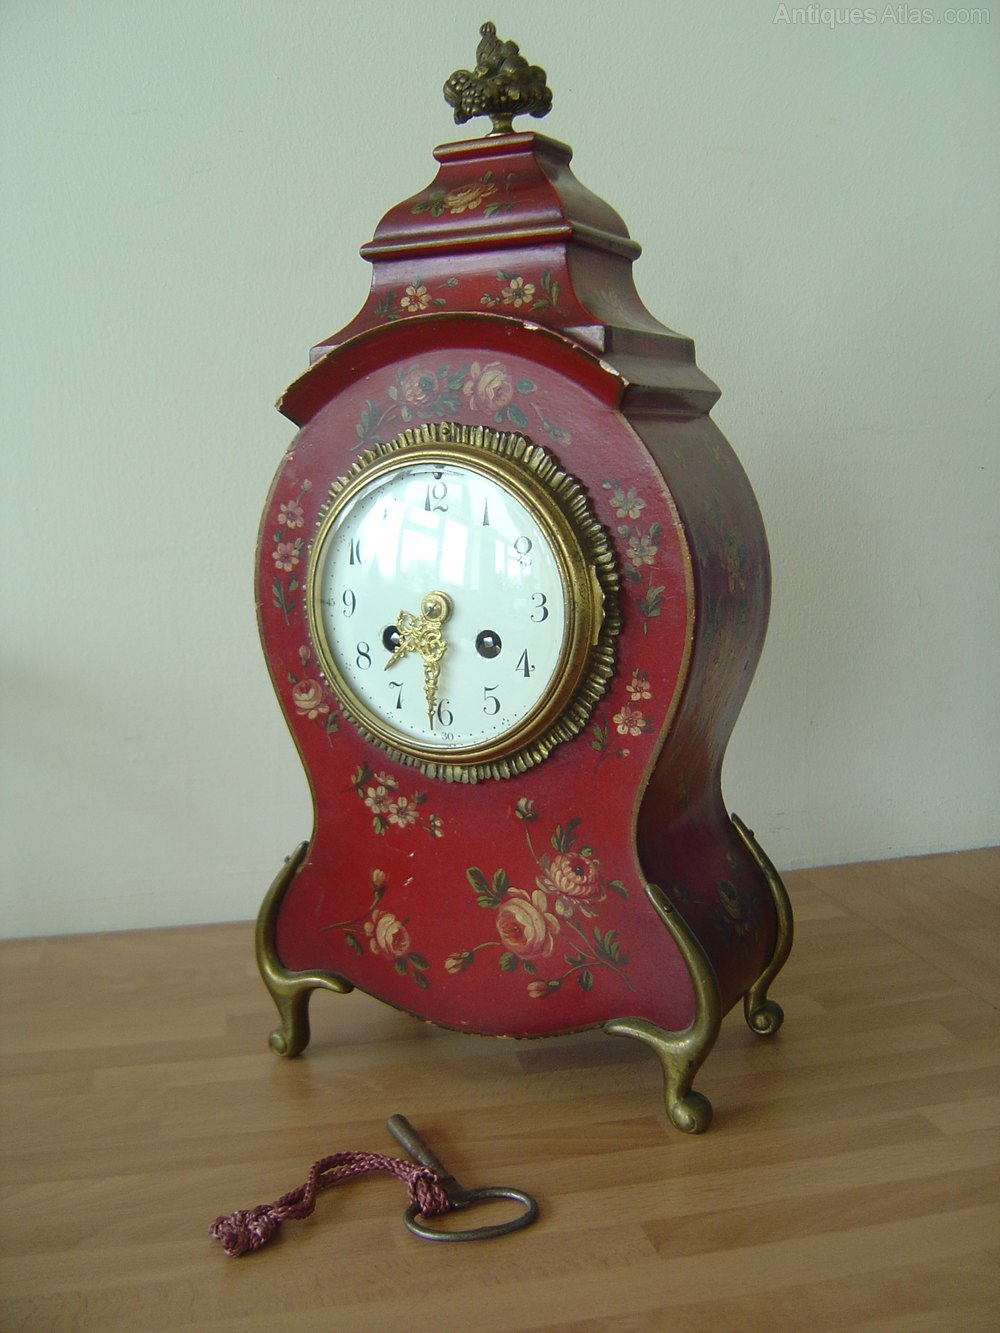 Dating Antique Clocks by Style and Type